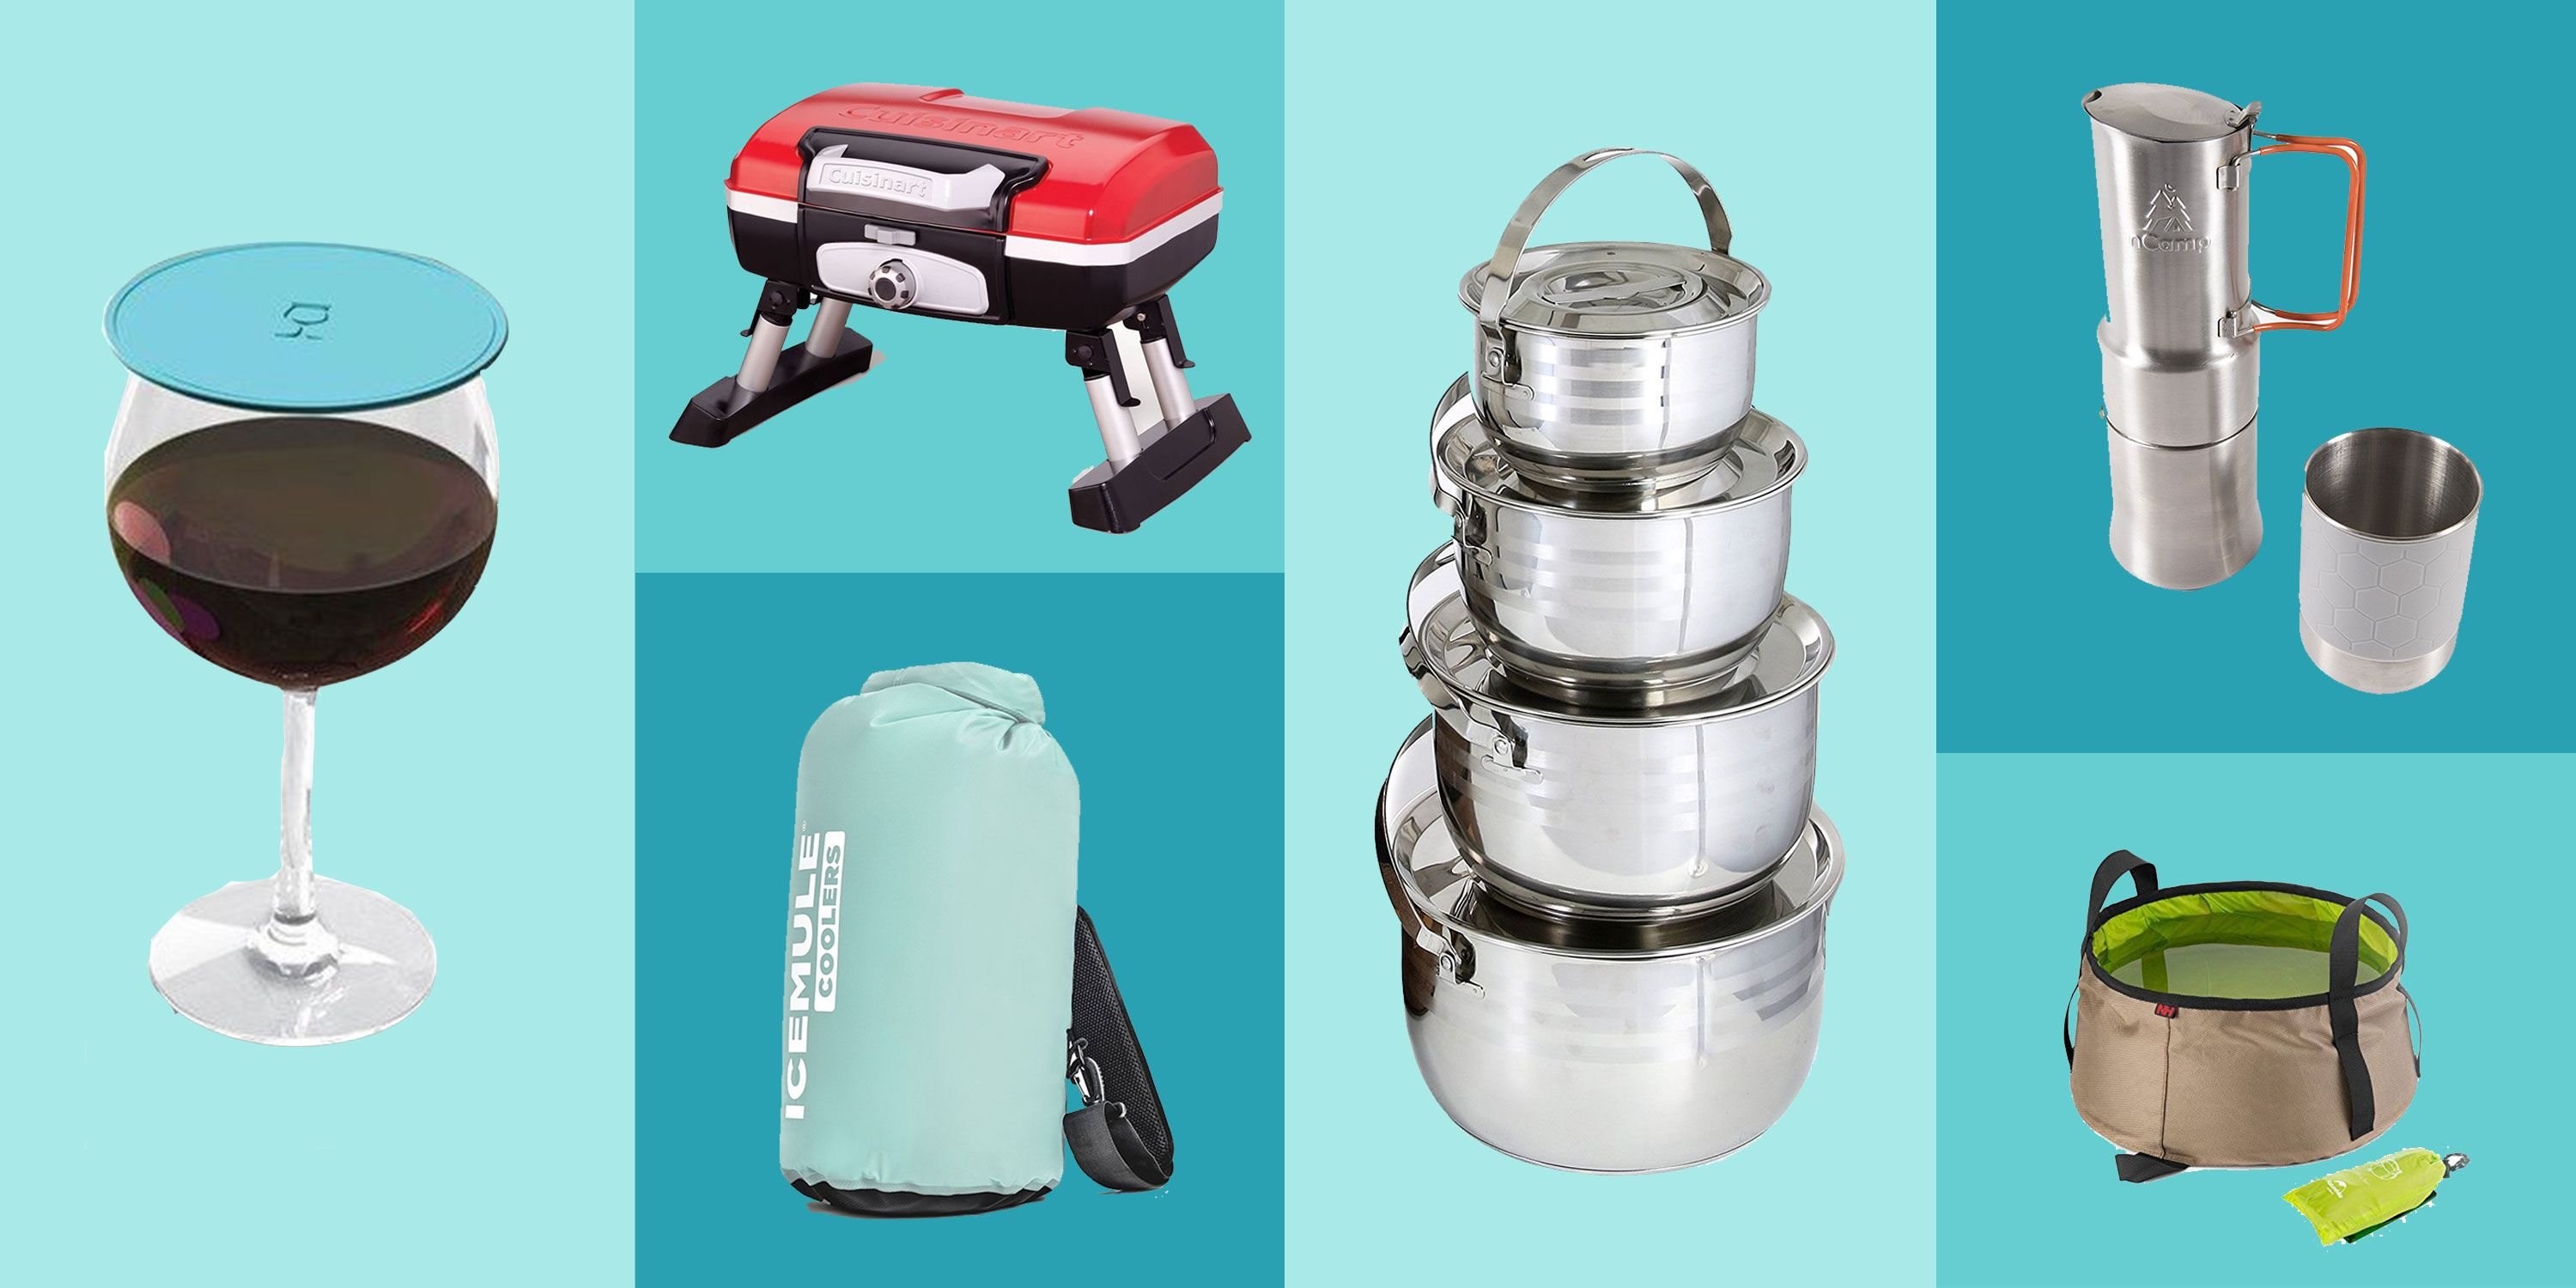 Best Camping Cookware - 15+ Top Camping Cooking Gear and